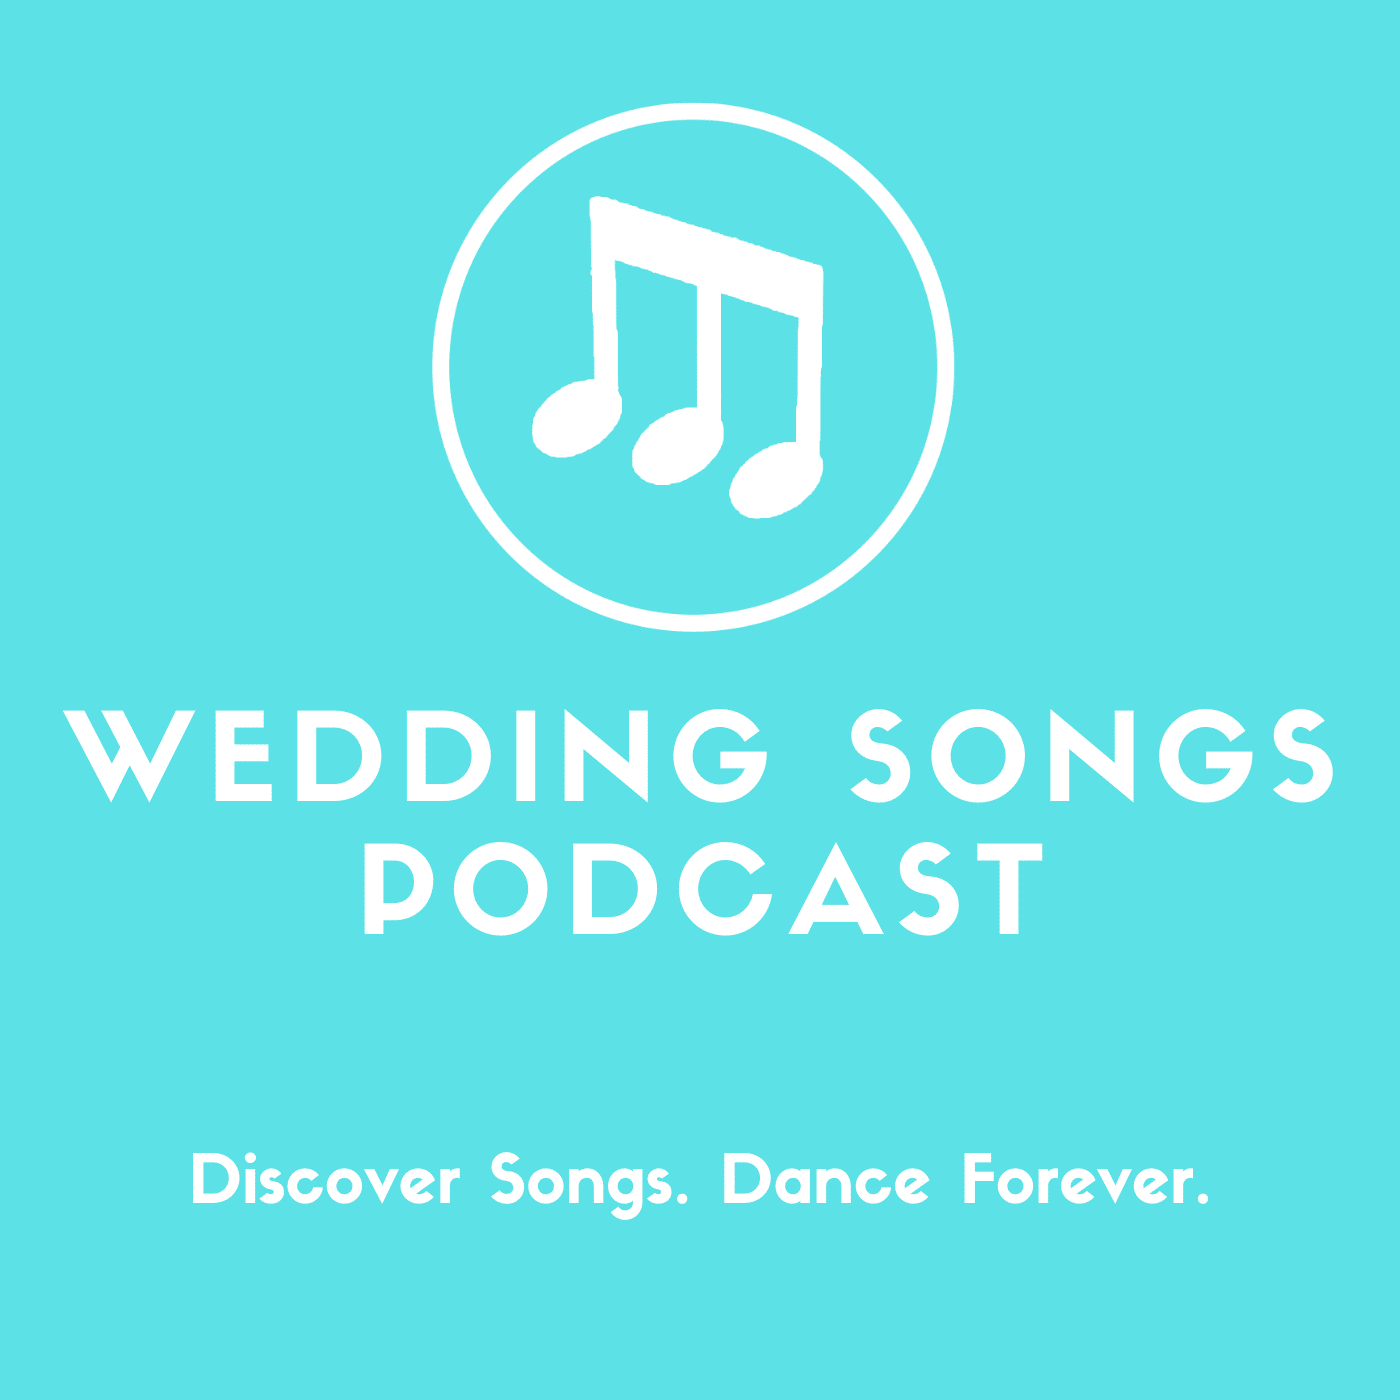 Wedding Songs Podcast Logo